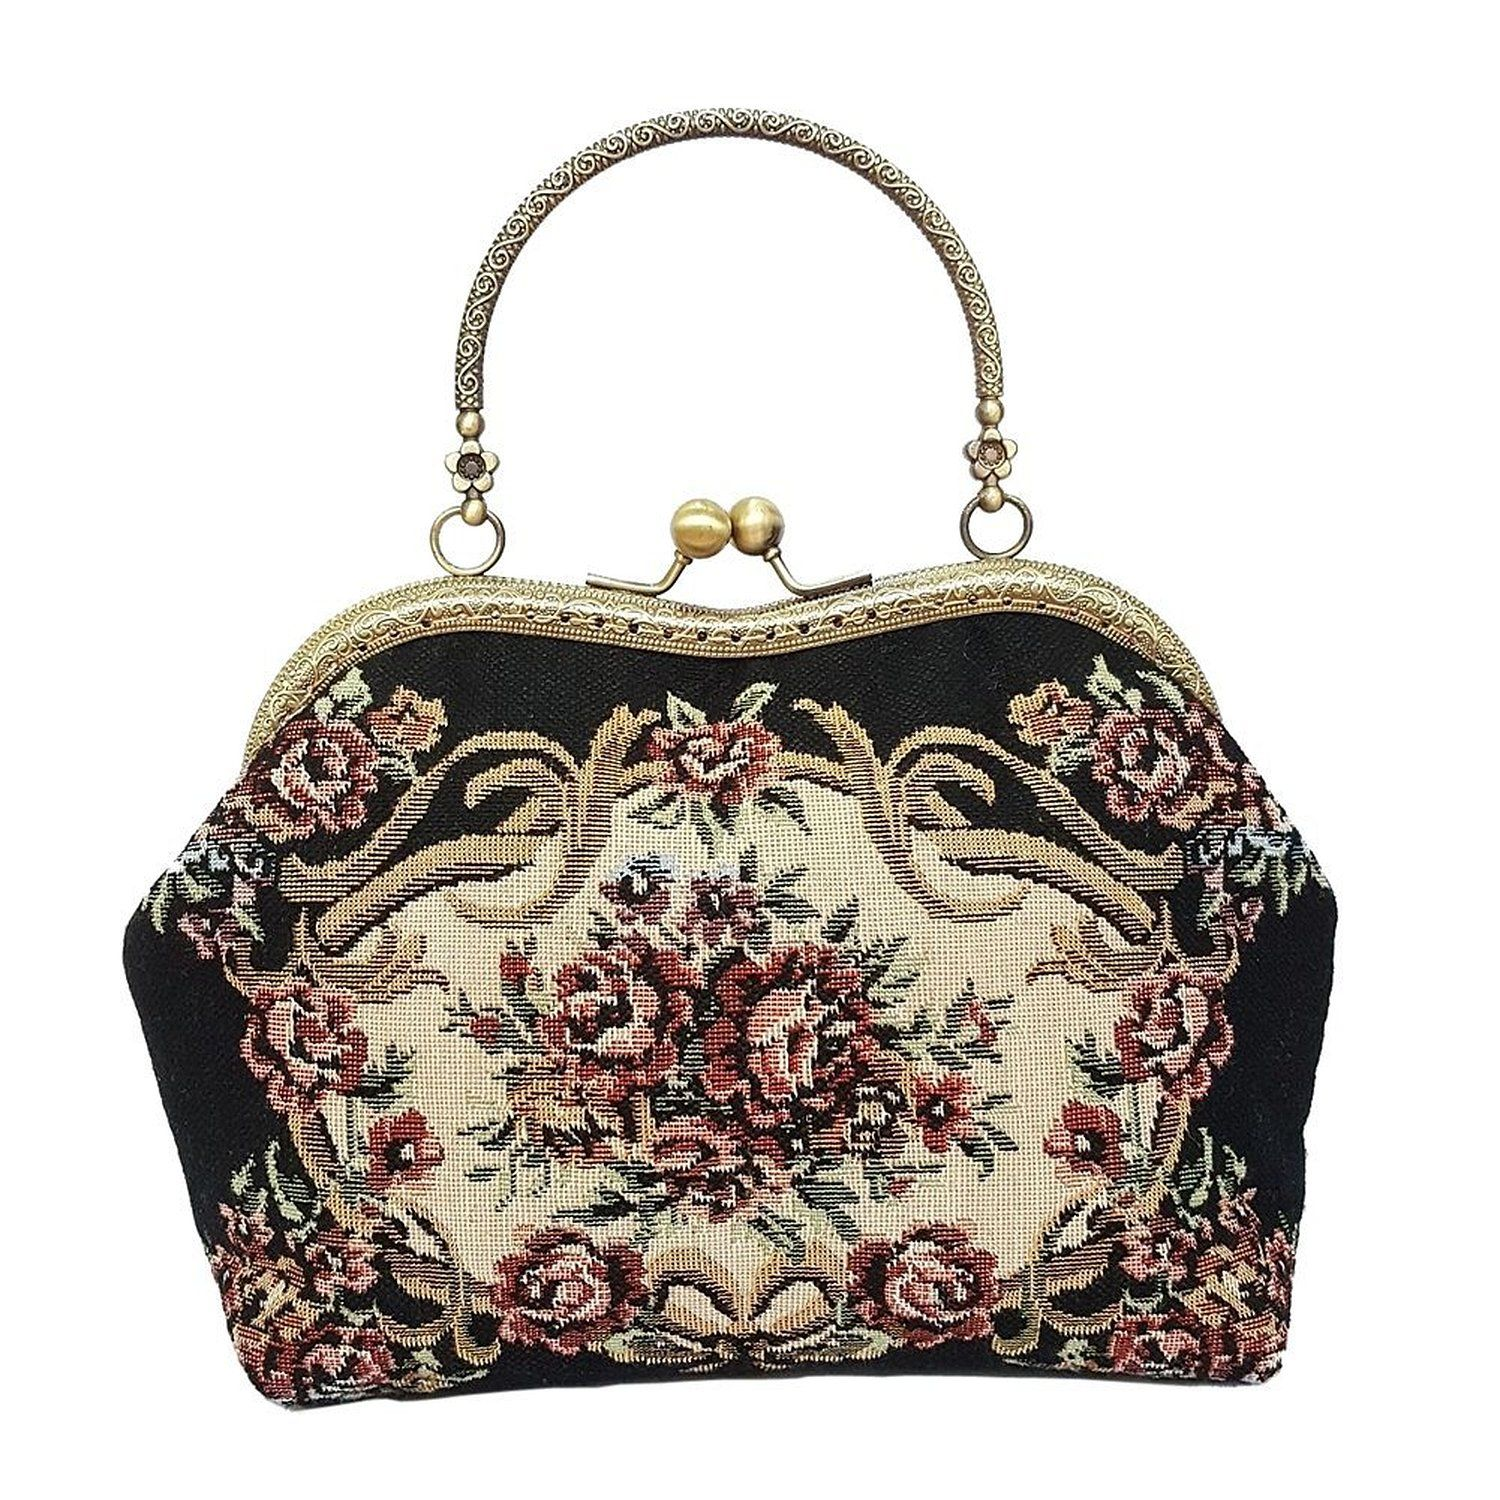 1920s Style Purses and Beaded Flapper Bags Flower prints